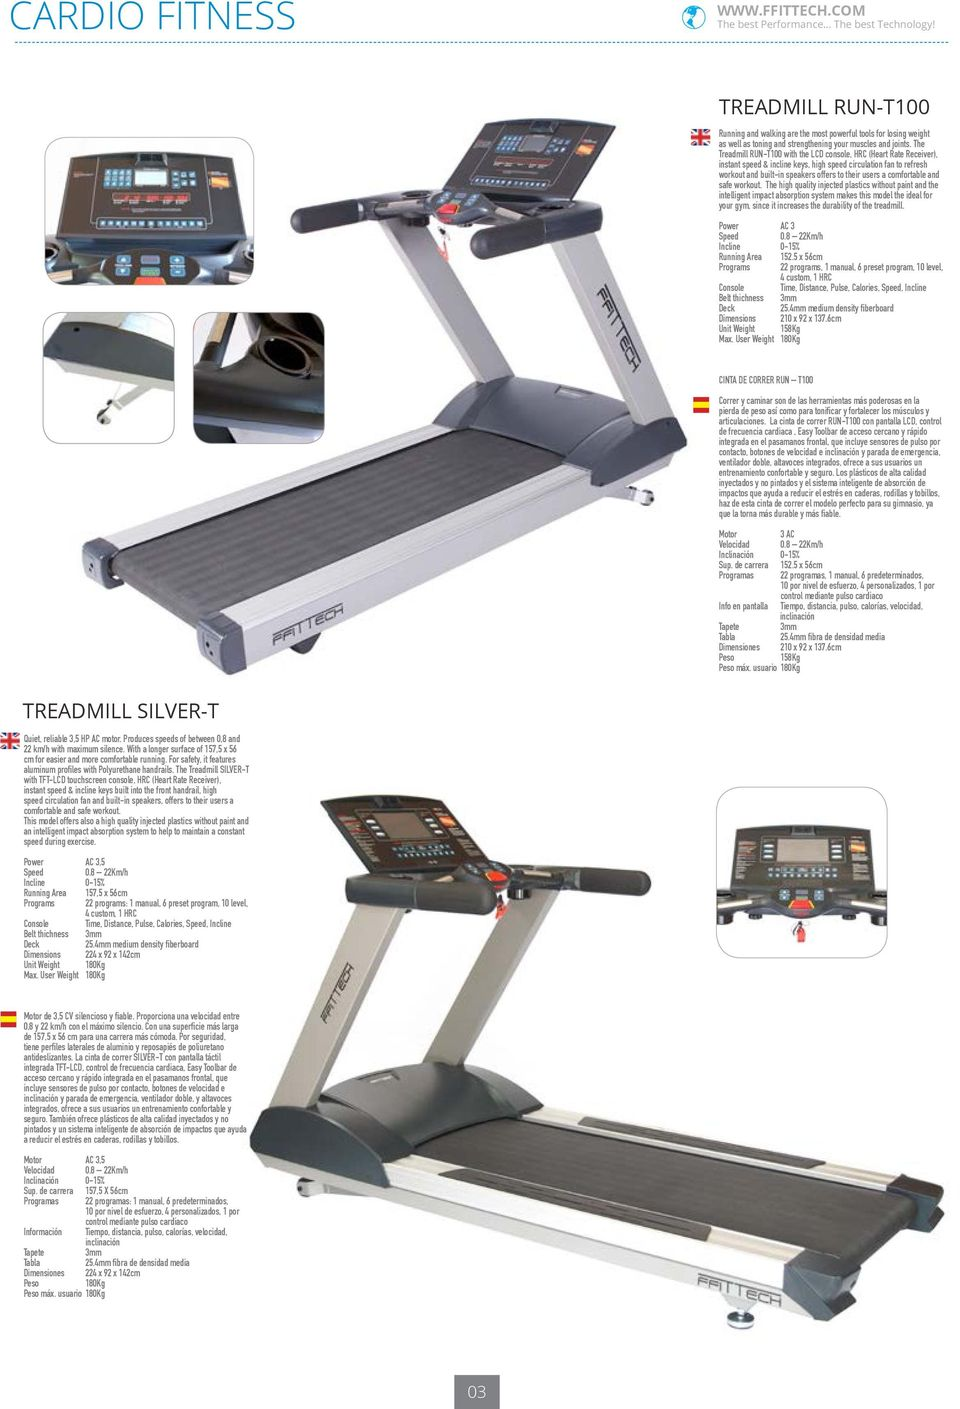 The Treadmill RUN-T100 with the LCD console, HRC (Heart Rate Receiver), instant speed & incline keys, high speed circulation fan to refresh workout and built-in speakers offers to their users a